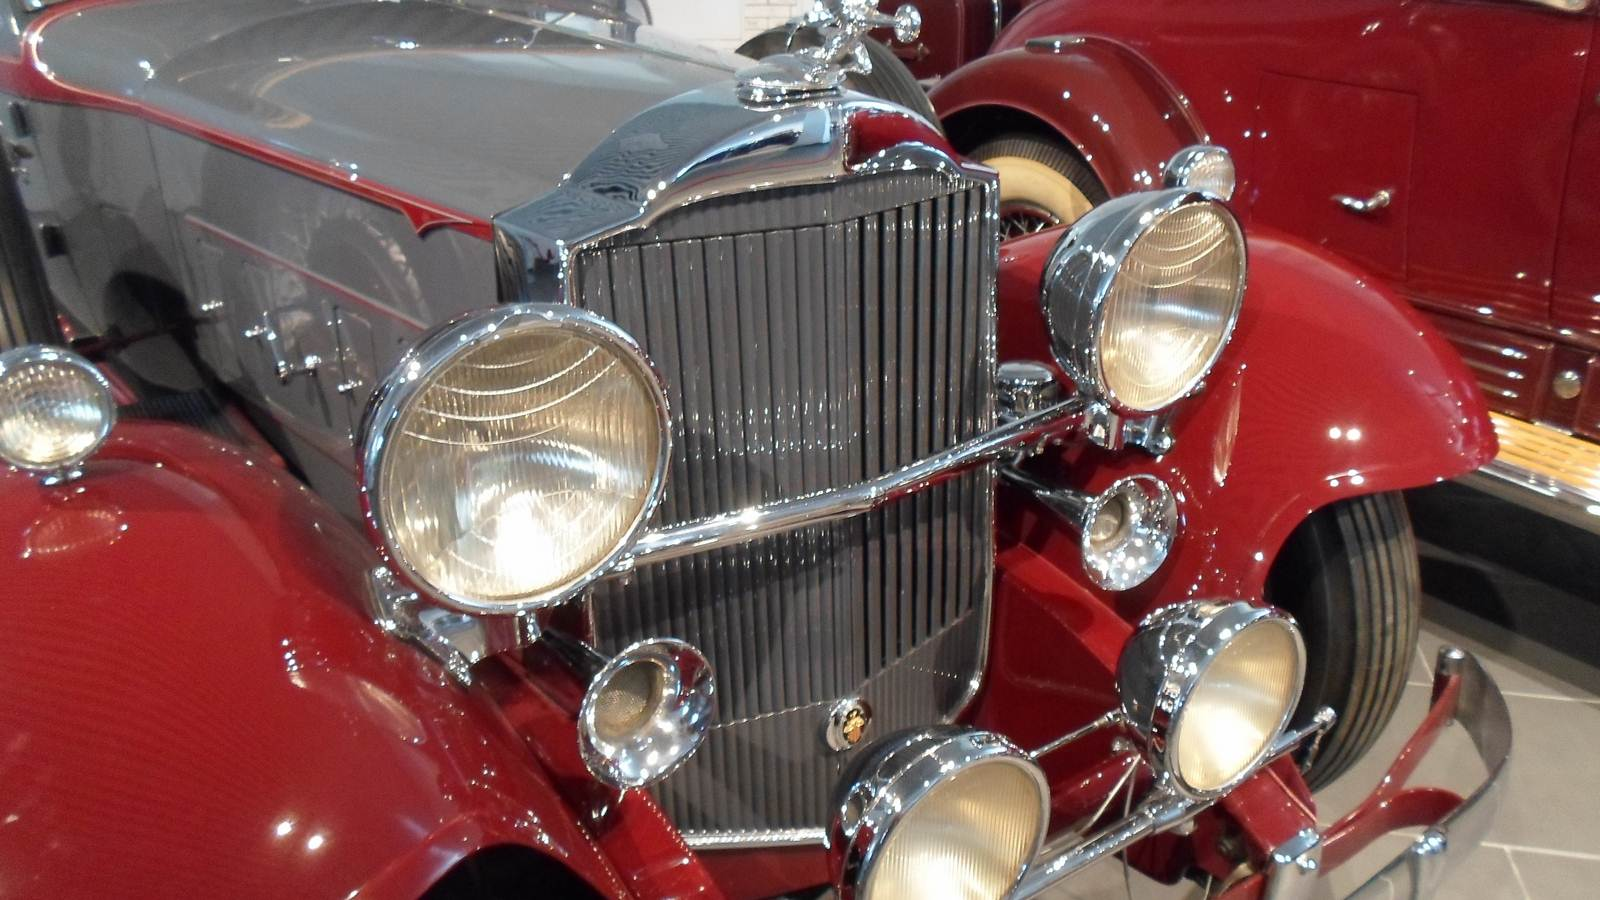 1931-1932. Packard 902-509 Standard Eight Coupe Roadster